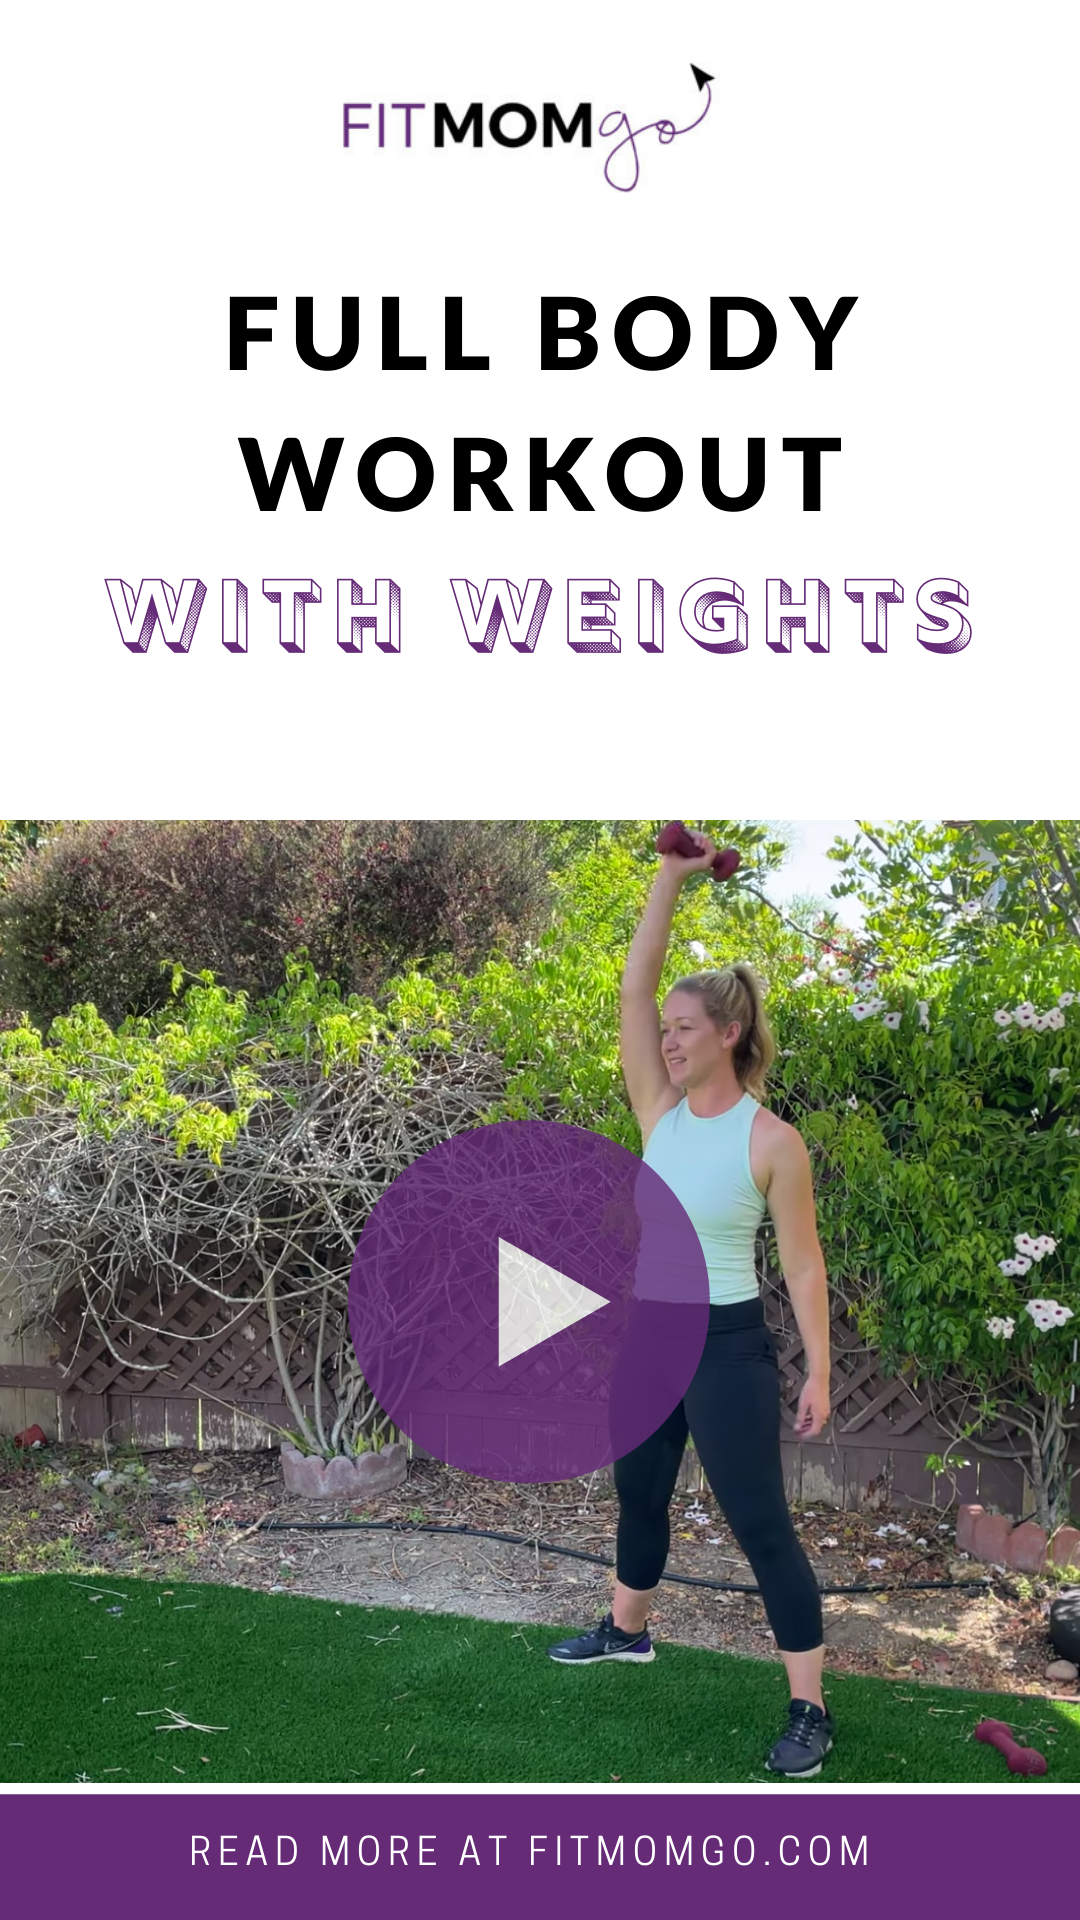 Full Body Workout with Weights #fullbodyworkout #workoutwithweights #dumbbells #workoutwithdumbbells #quickworkout #workoutvideos #postpartumfitness